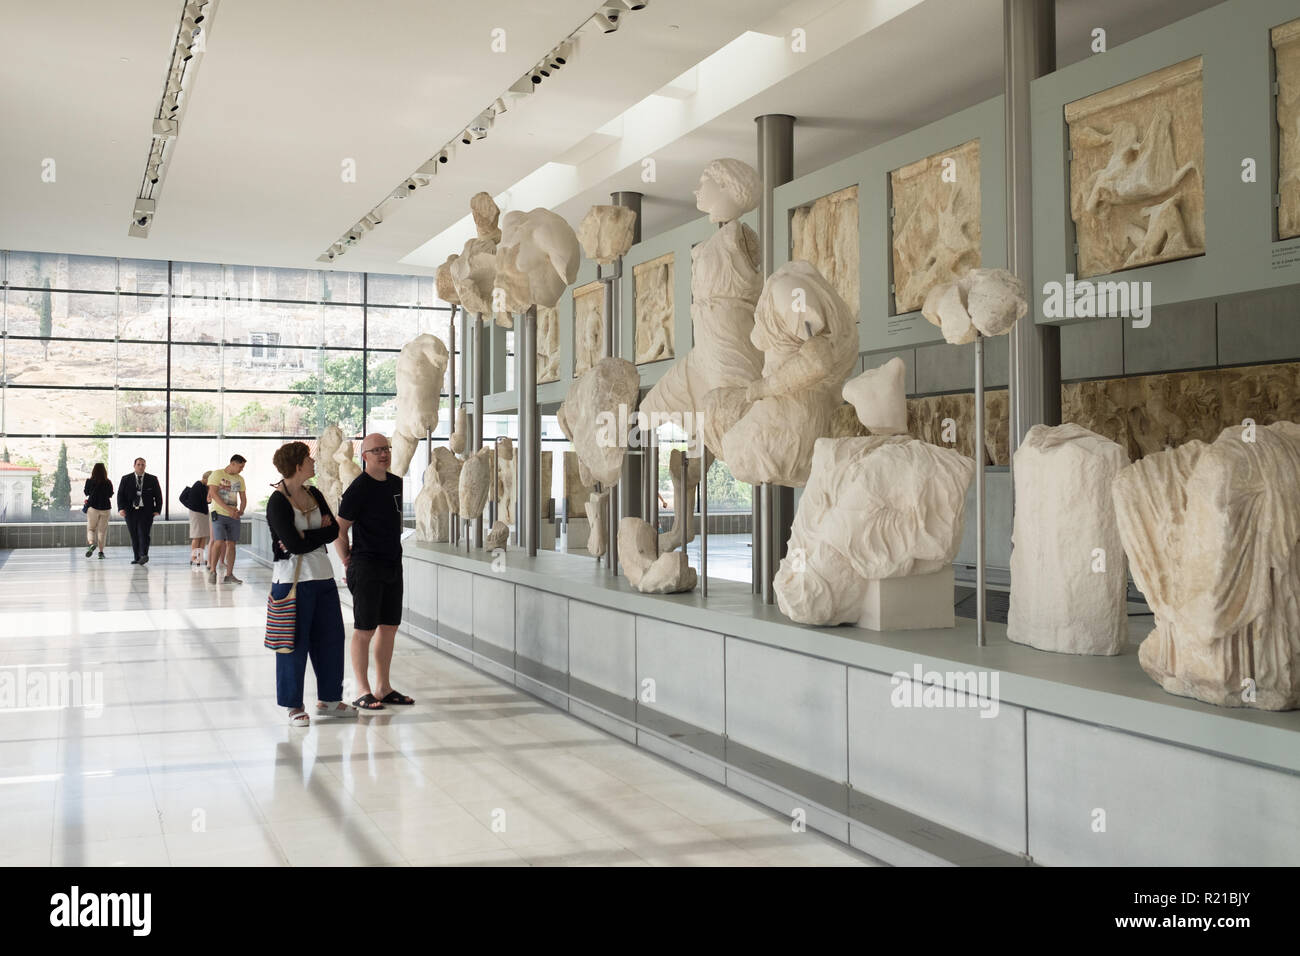 Tourists view the west pediment of the Parthenon in the Acropolis Museum in Athens, Greece Stock Photo